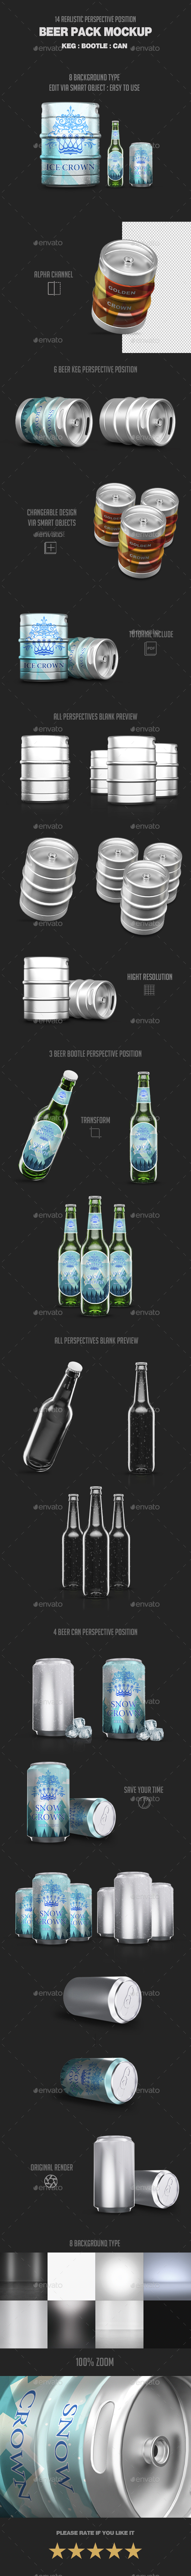 Beer Pack Mock-Up - Product Mock-Ups Graphics